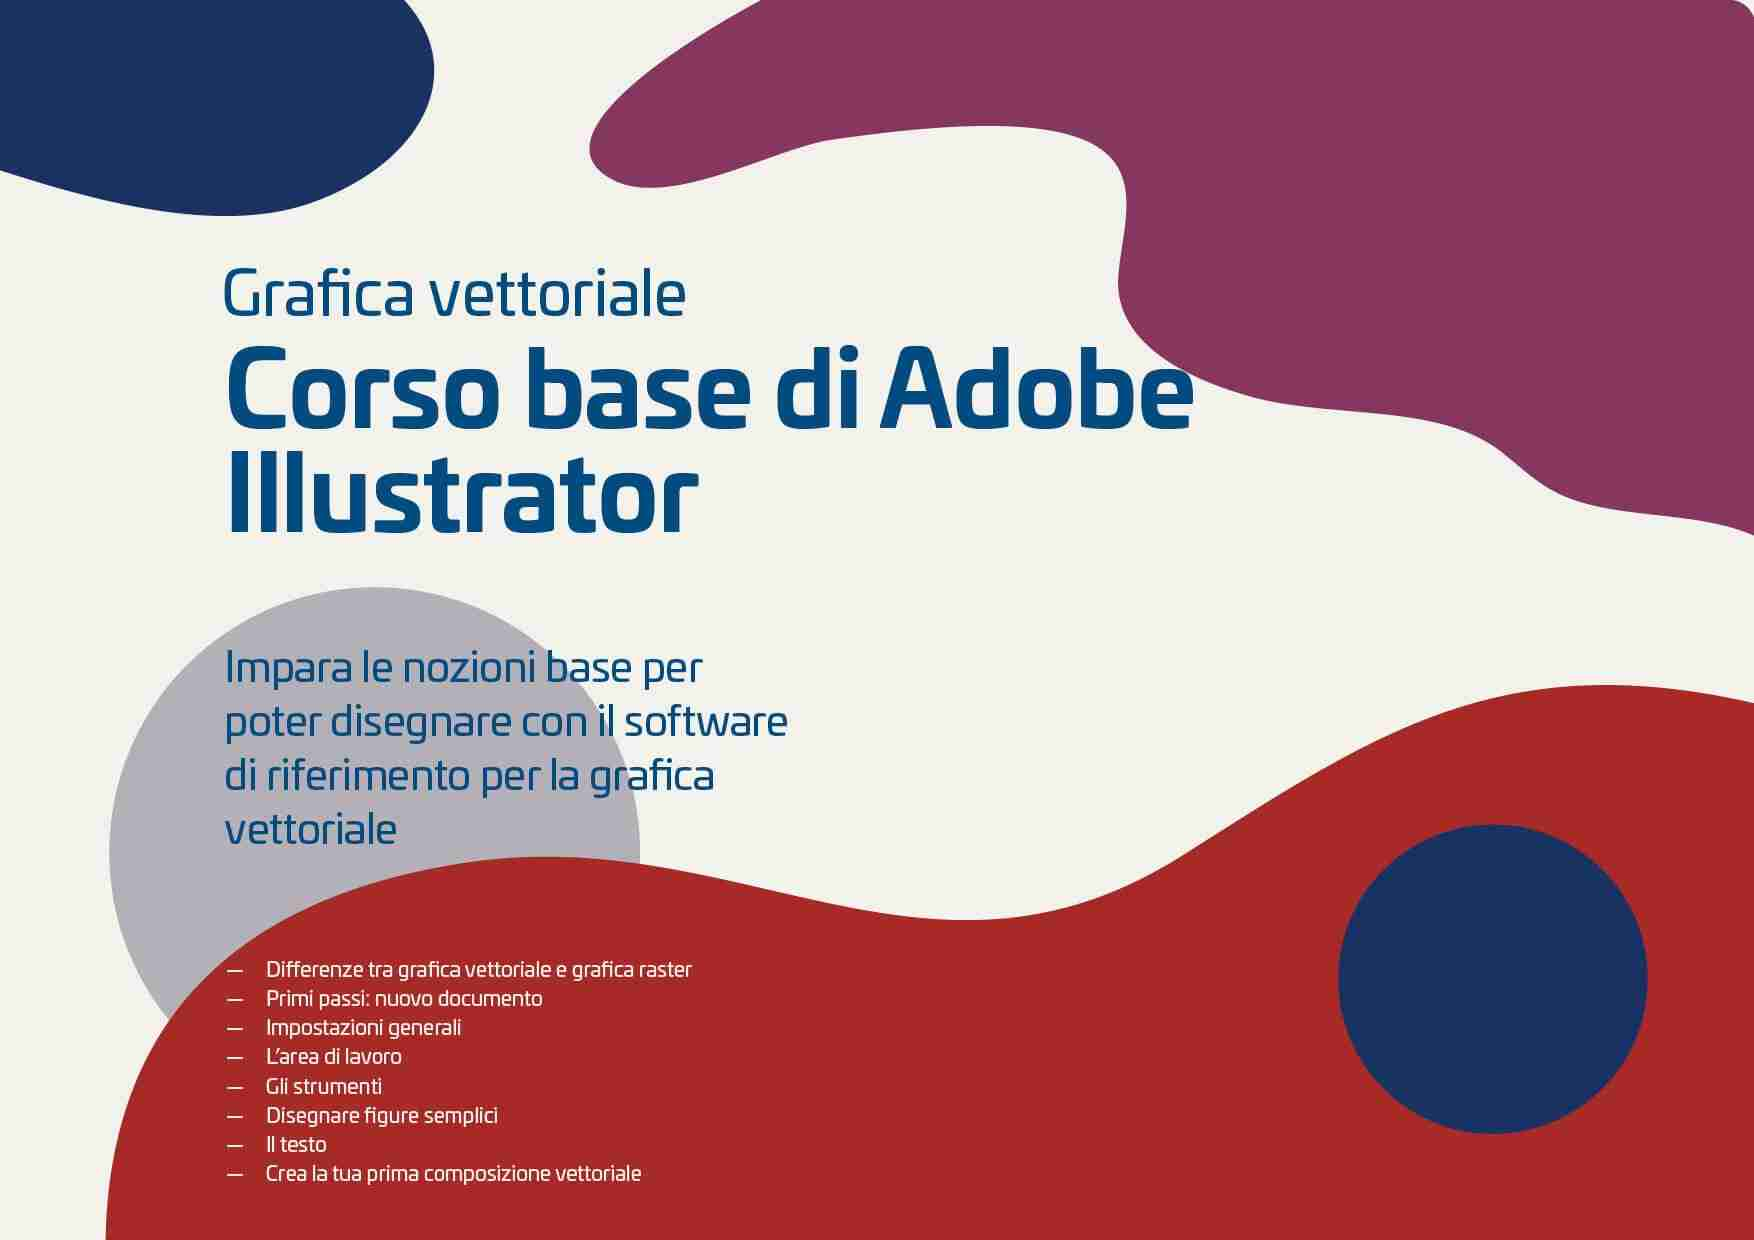 Corso base di Adobe Illustrator - grafica vettoriale - Corsi Lorenzdesign studio grafico